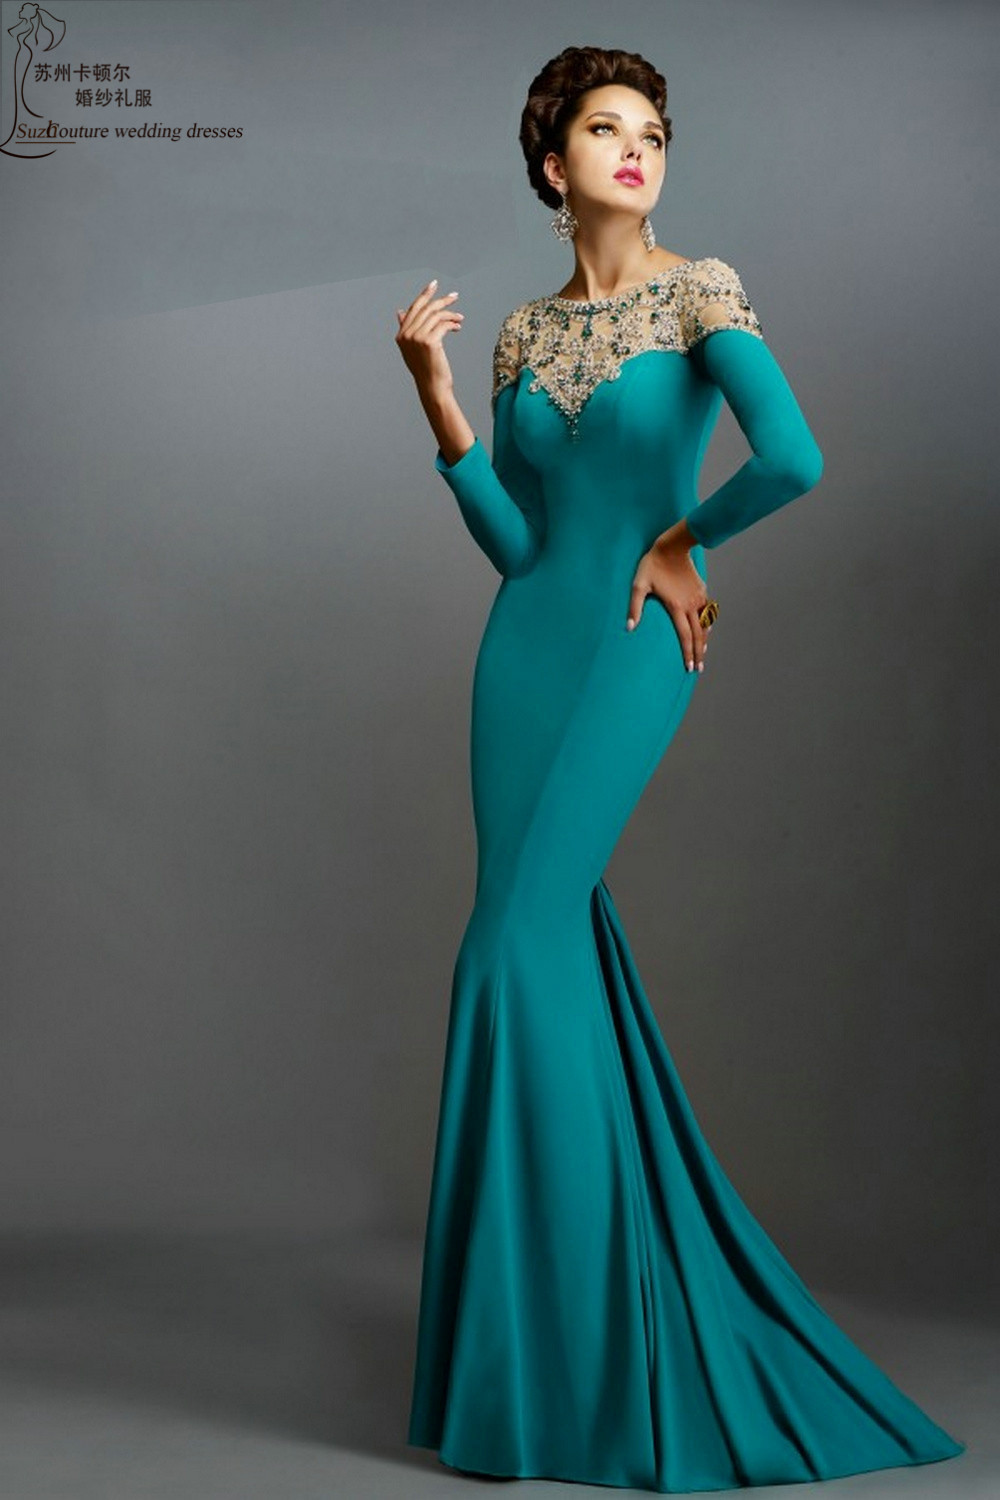 Long sleeve evening dresses 2015 ME1374 elegant mermaid evening dress  custom made emerald green women formal dresses to party-in Evening Dresses  from ... 084ac528c7